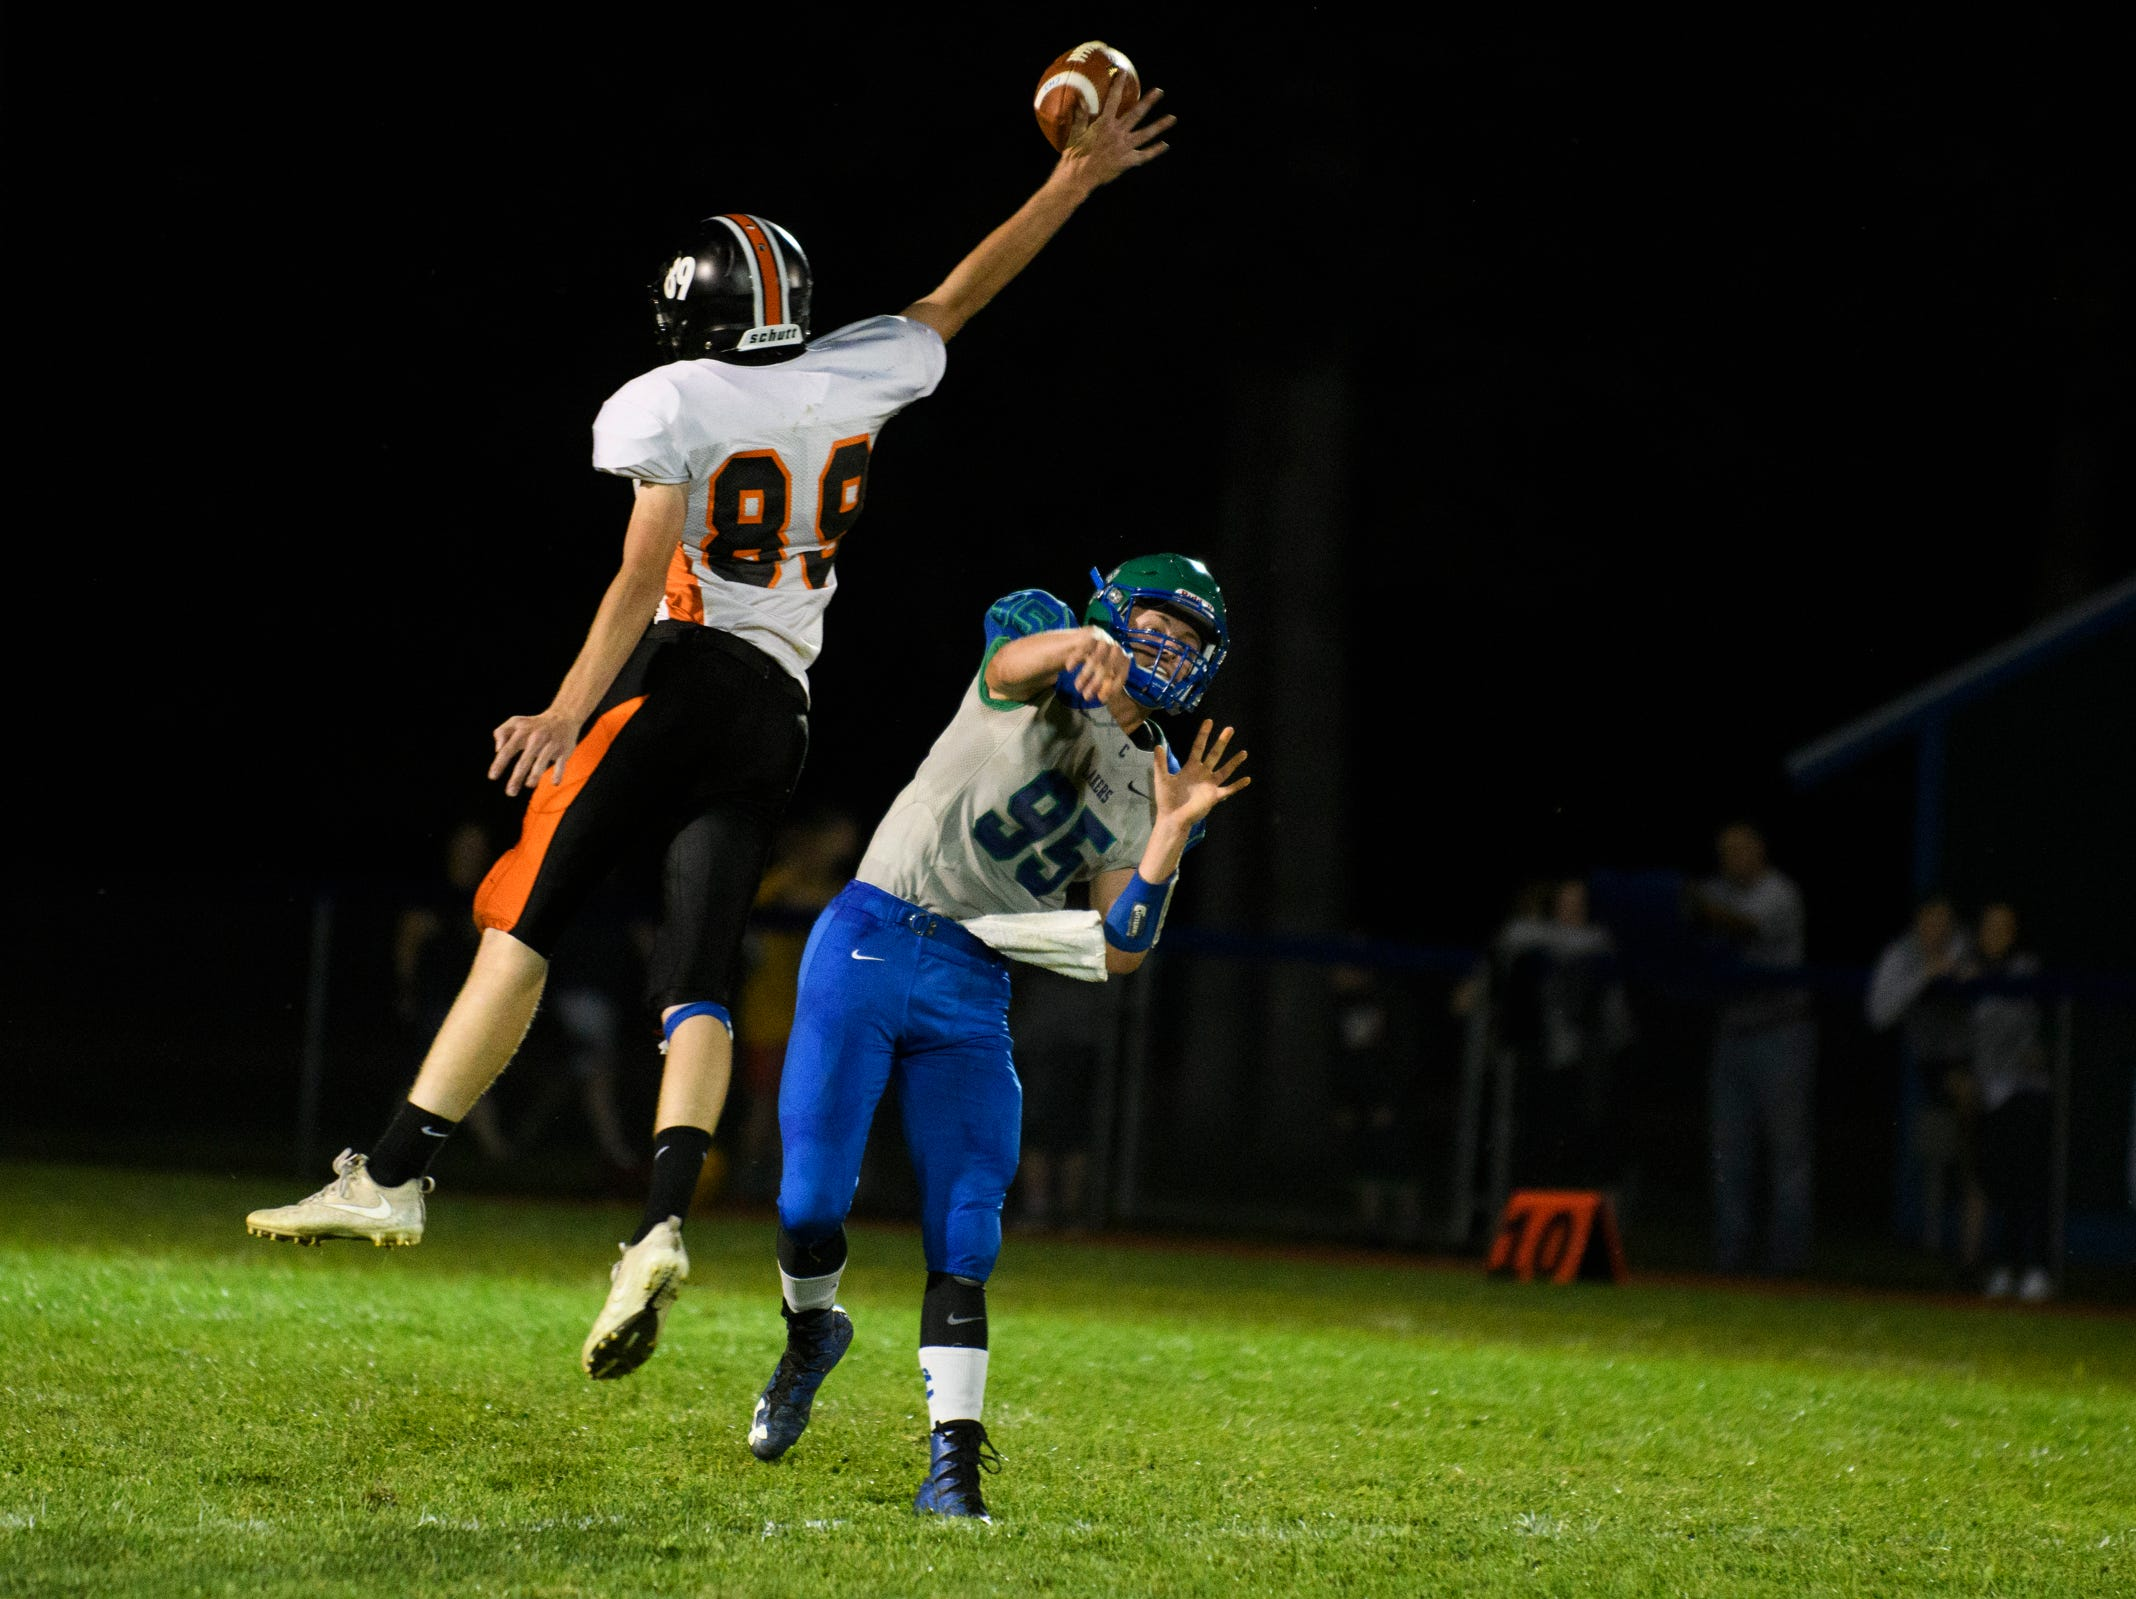 Middlebury's Wyatt Cameron (89) blocks the pass by Colchester quarterback LLewey Powell (95) during the boys high school football game between Middlebury and Colchester at Colchester high school on Friday night August 31, 2018 in Colchester.